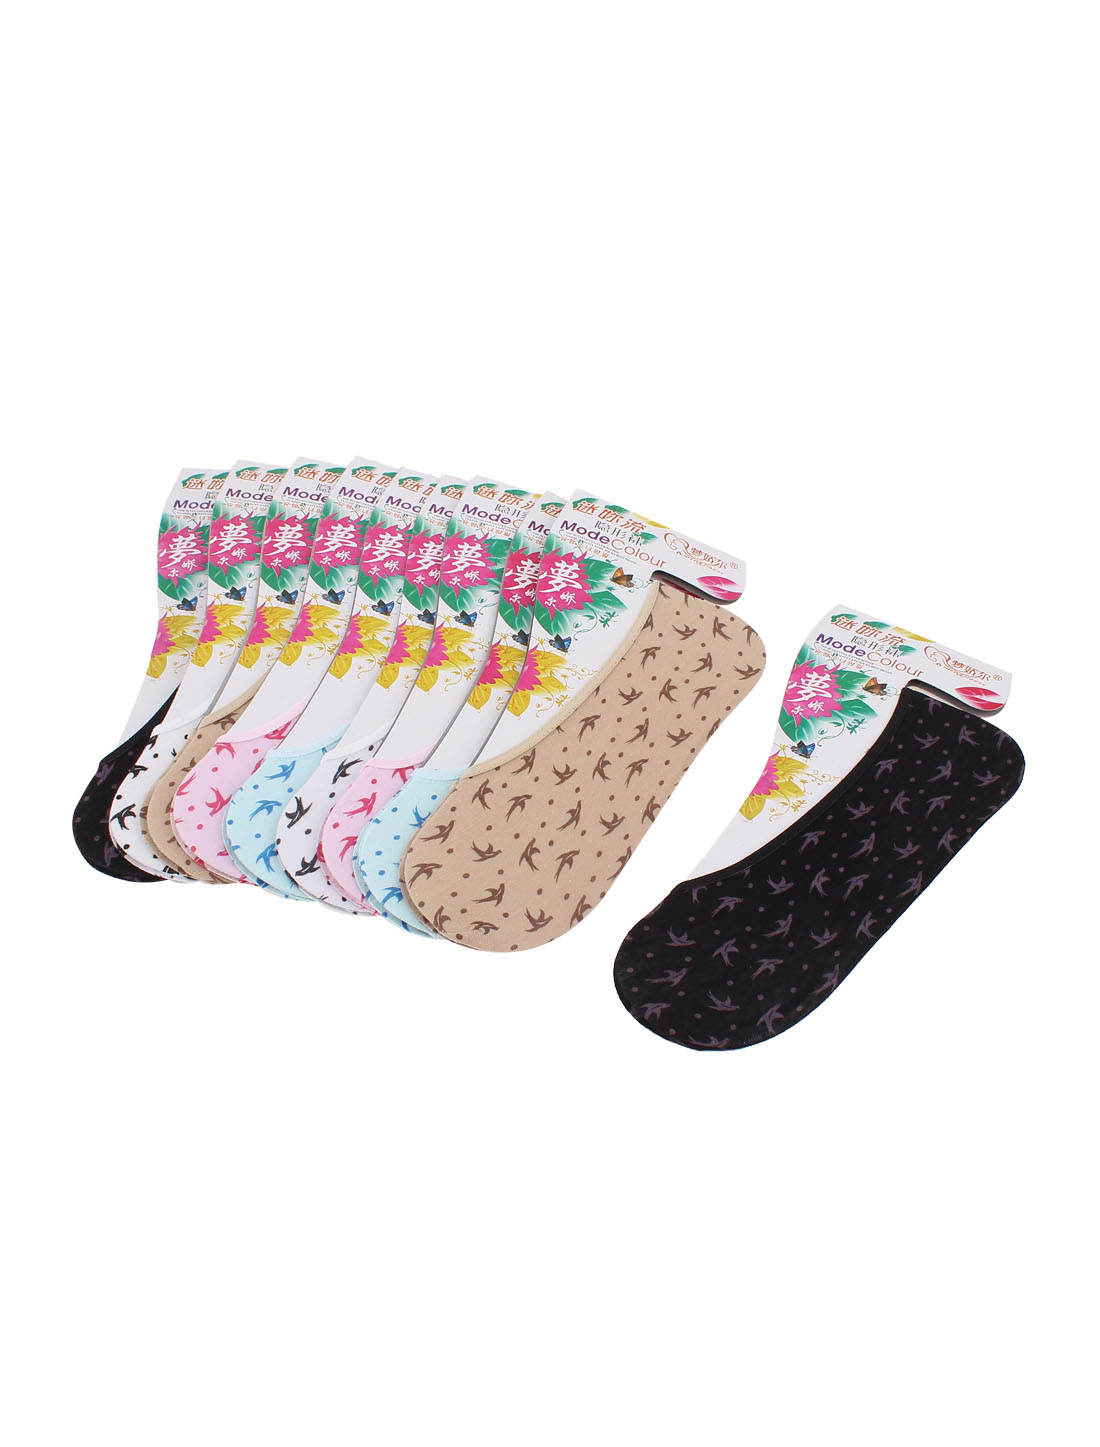 Stretchy Cotton Blends Swallow Printed Invisible Boat Socks for Women Assorted Color 10 Pairs